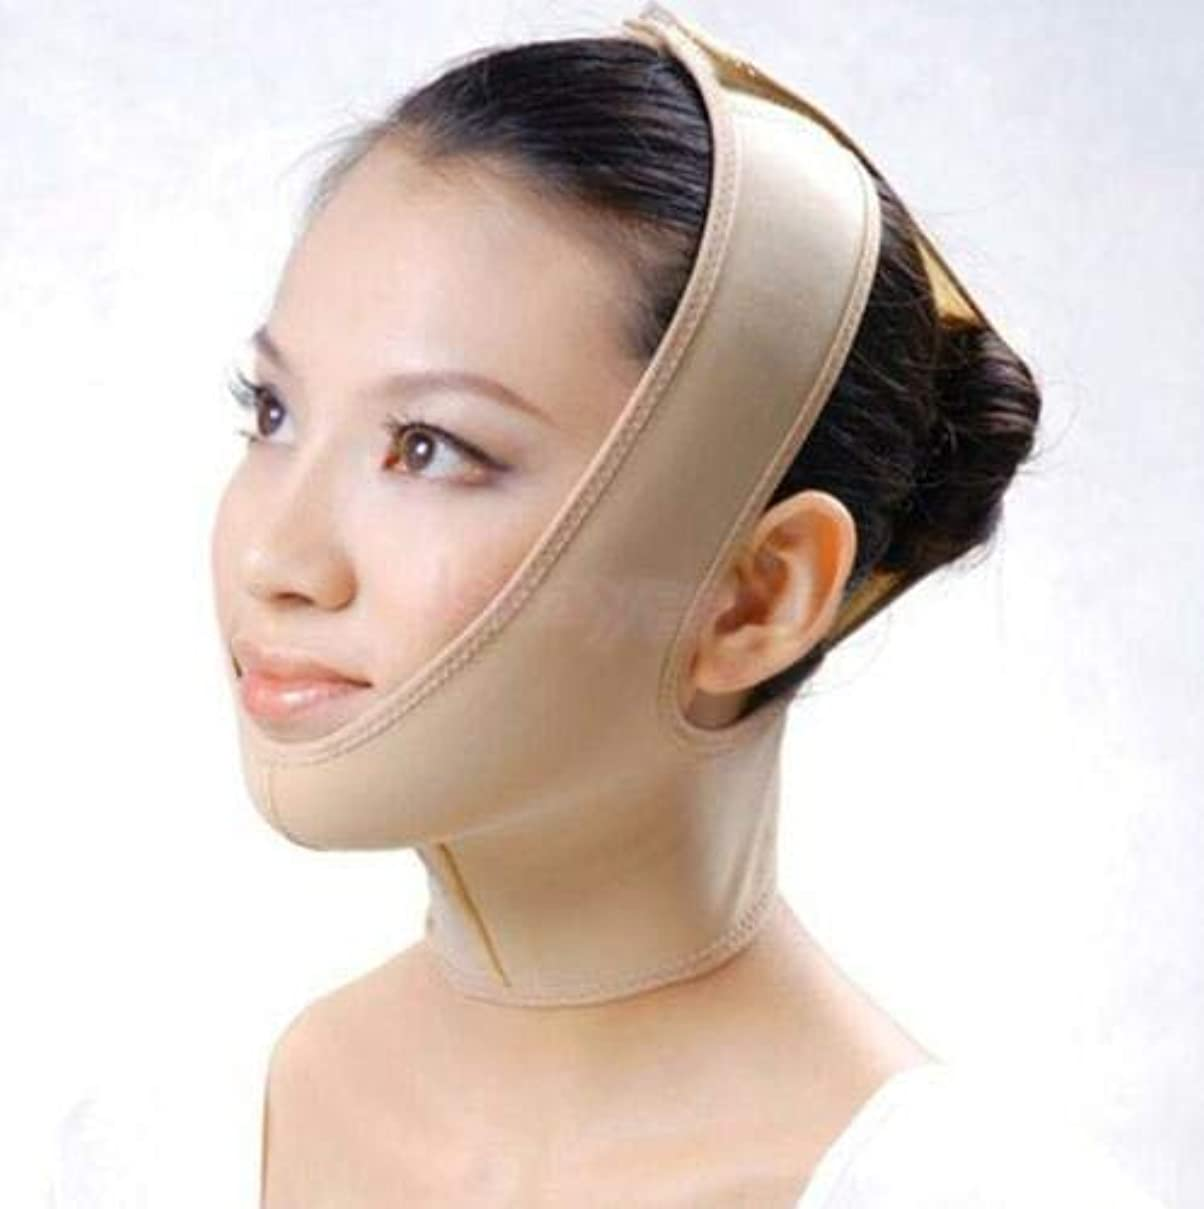 胚芽補足振りかけるFidgetGear ANTI WRINKLE V FACE CHIN CHEEK LIFT UP SLIMMING THIN BELT MASK STRAP BAND S-XXL Small